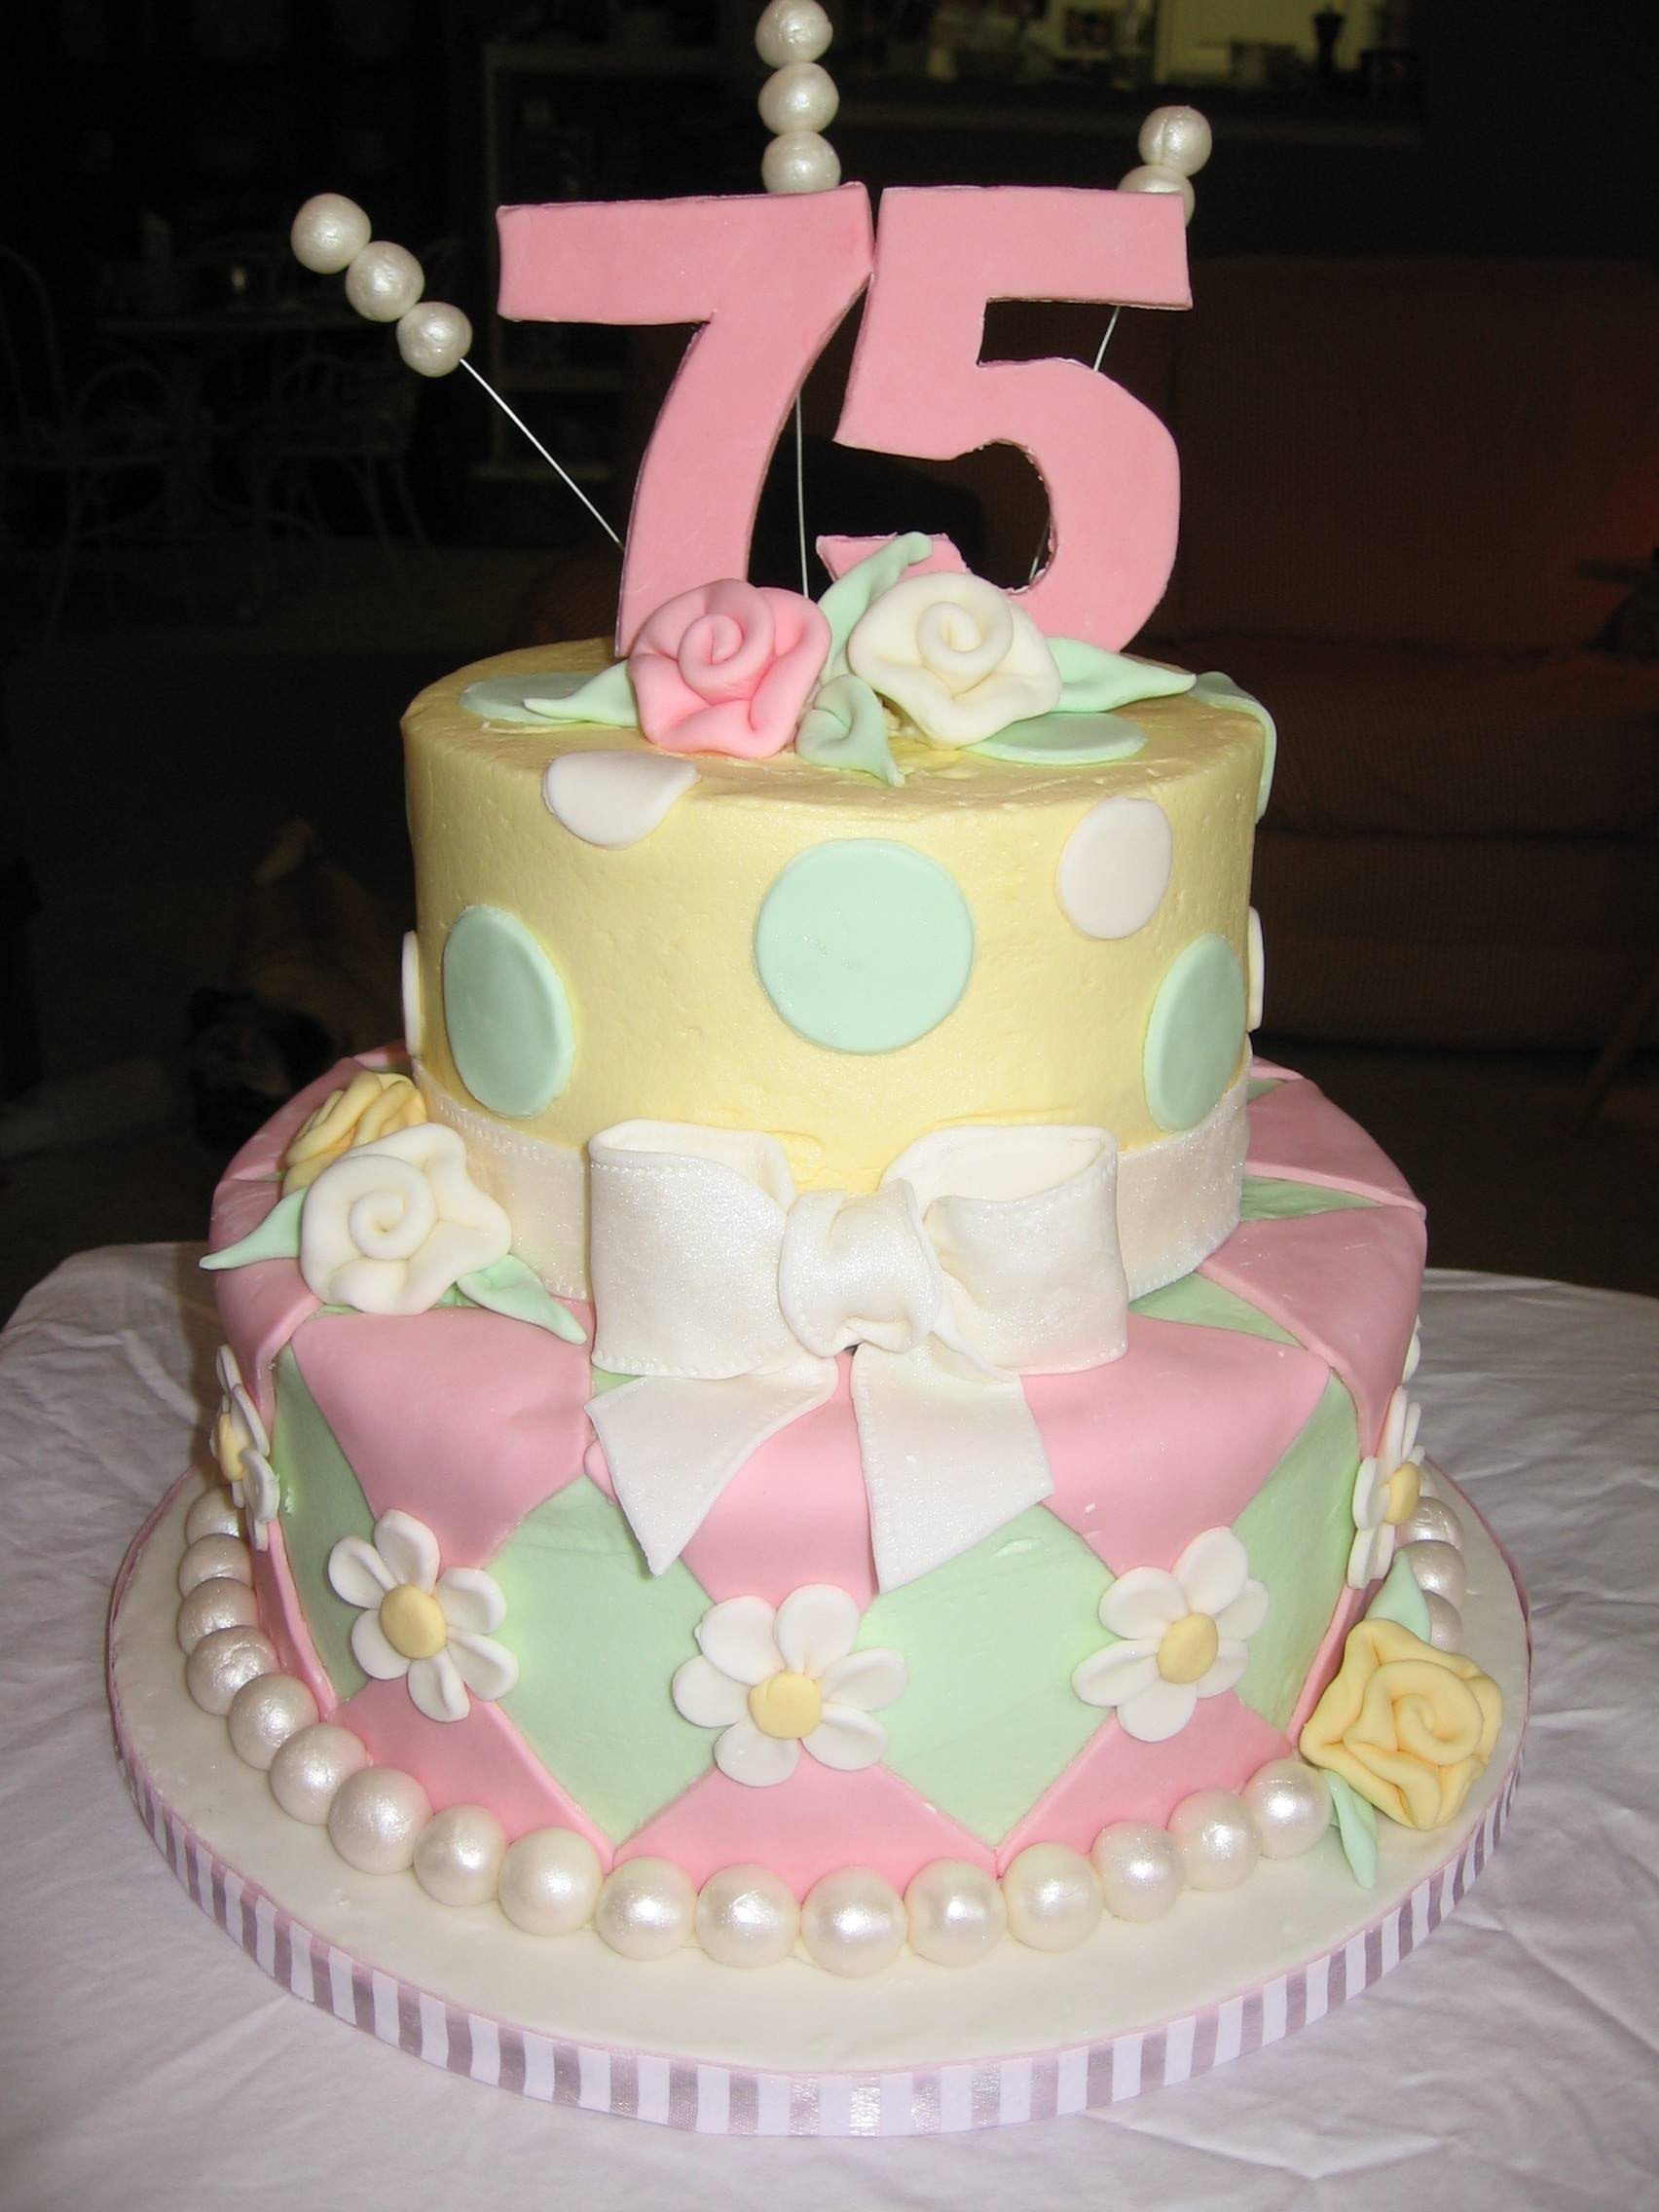 6 Wilton 75th Birthday Cakes Photo